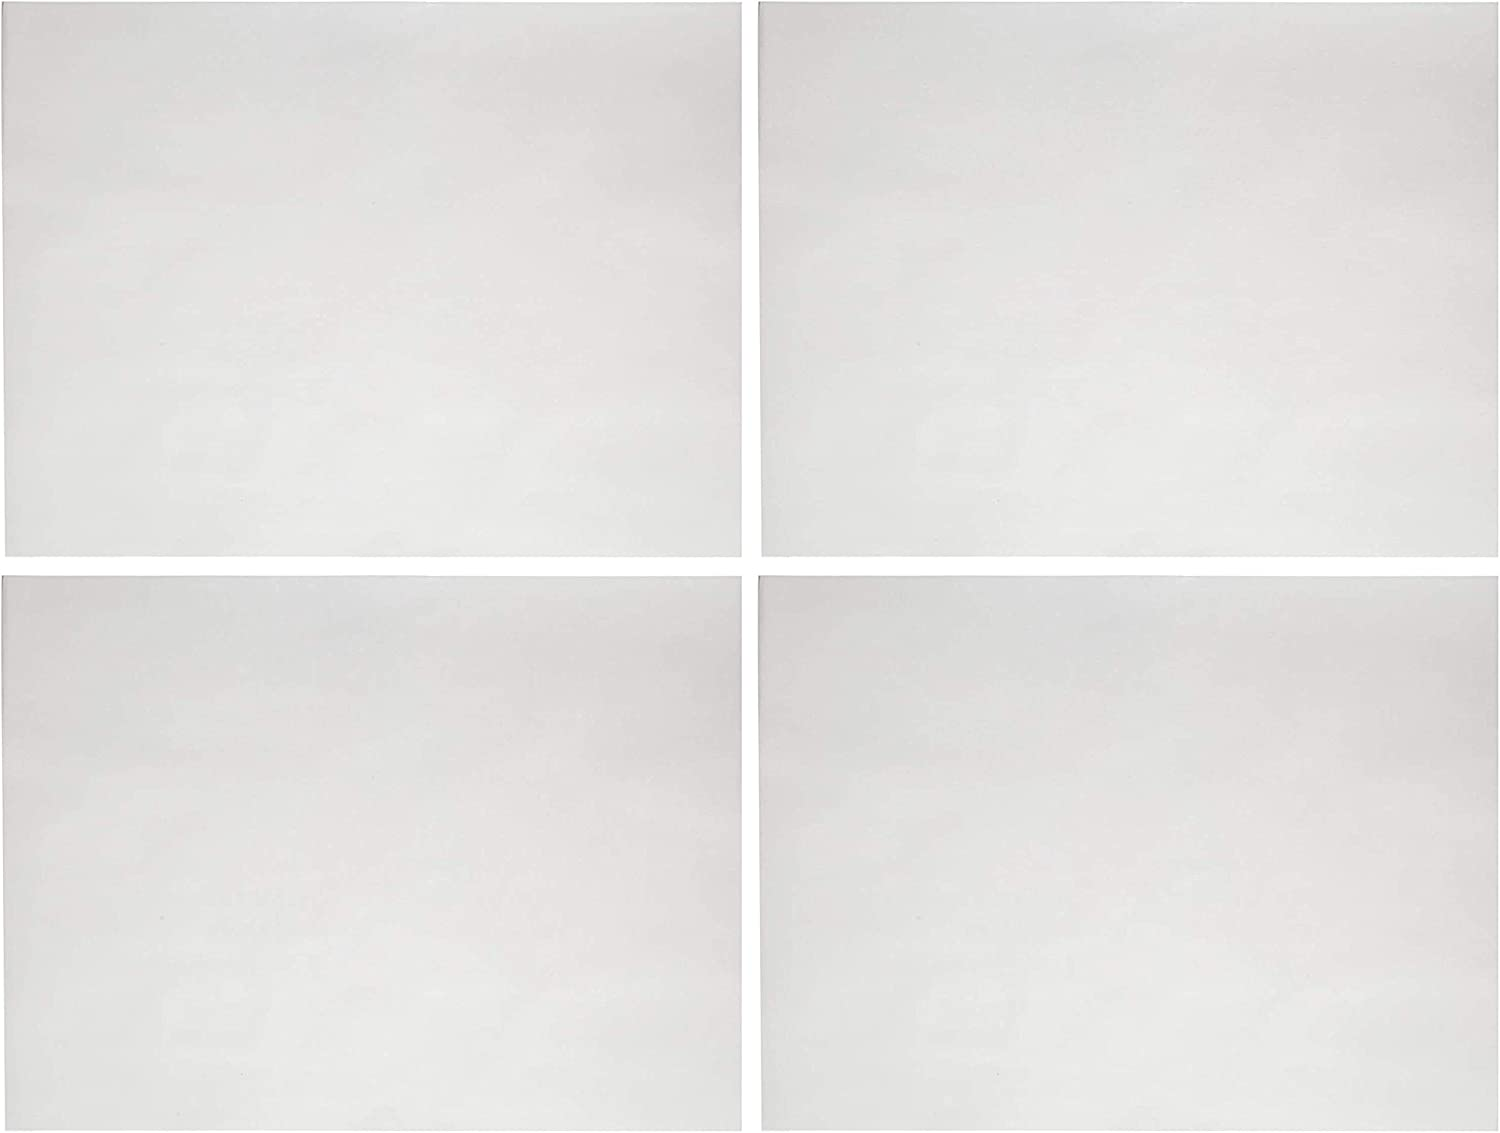 50 lb Sax Sulphite Drawing Paper 18 x 24 Inches Pack of 500 Extra-White